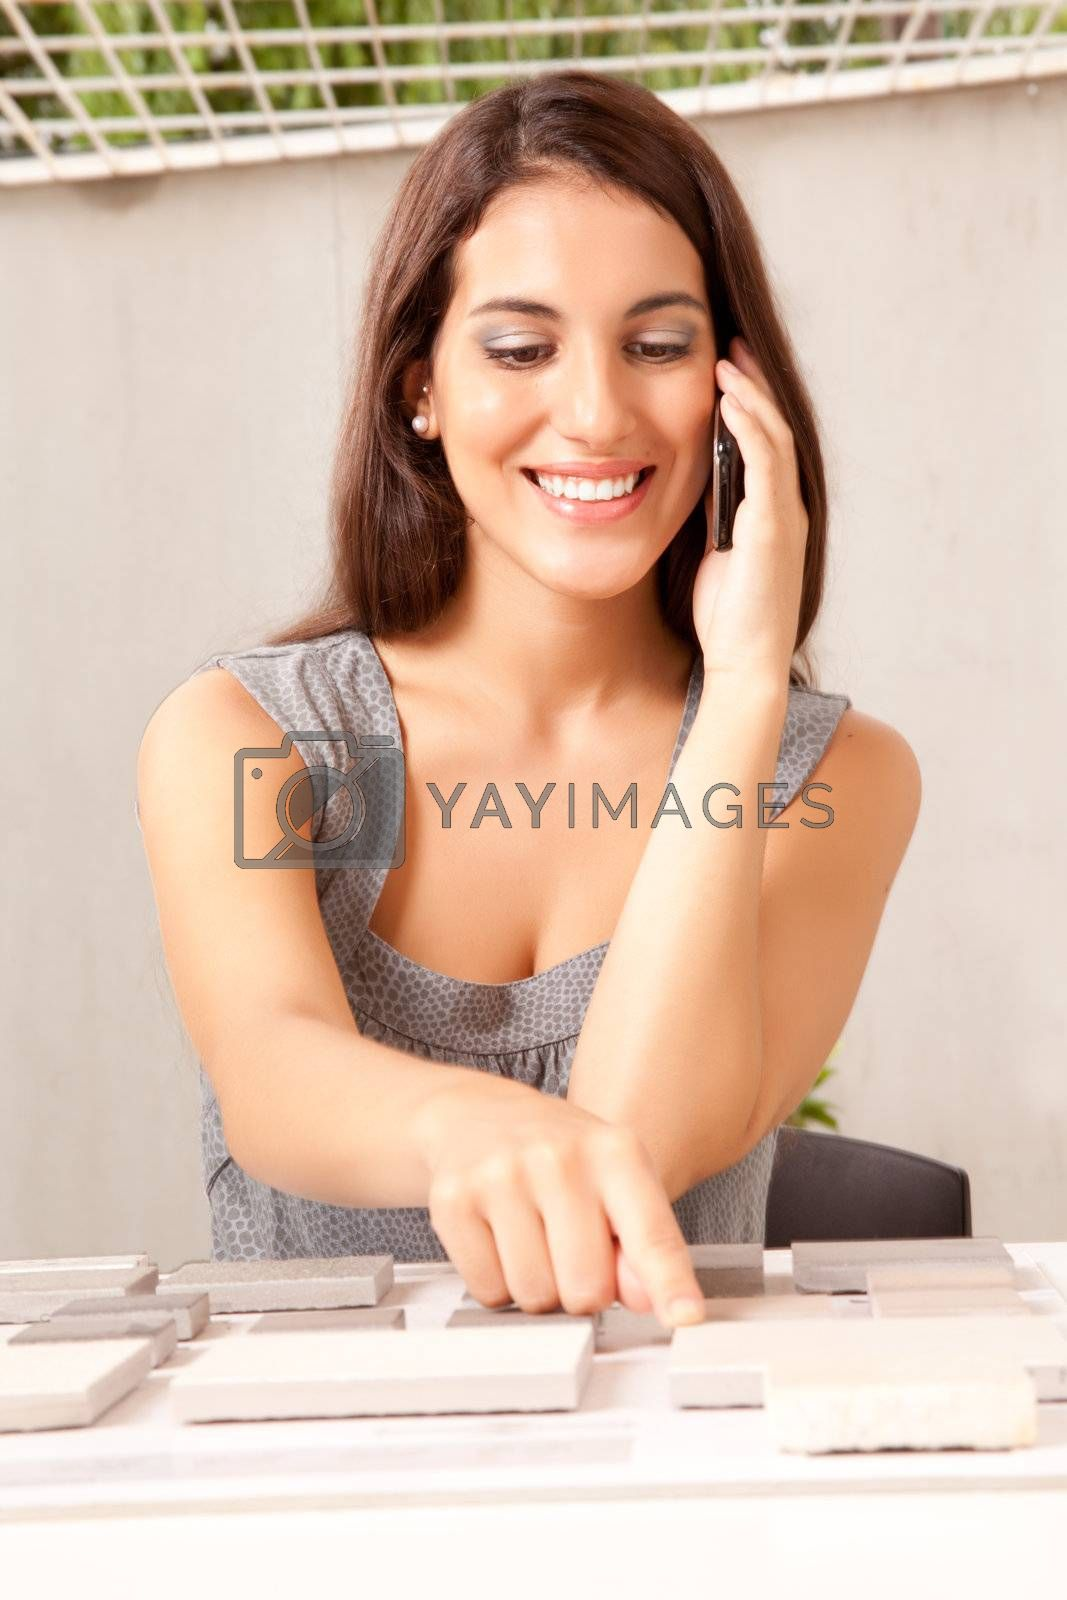 An interior designer / architect on the phone choosing a stone sample swatch